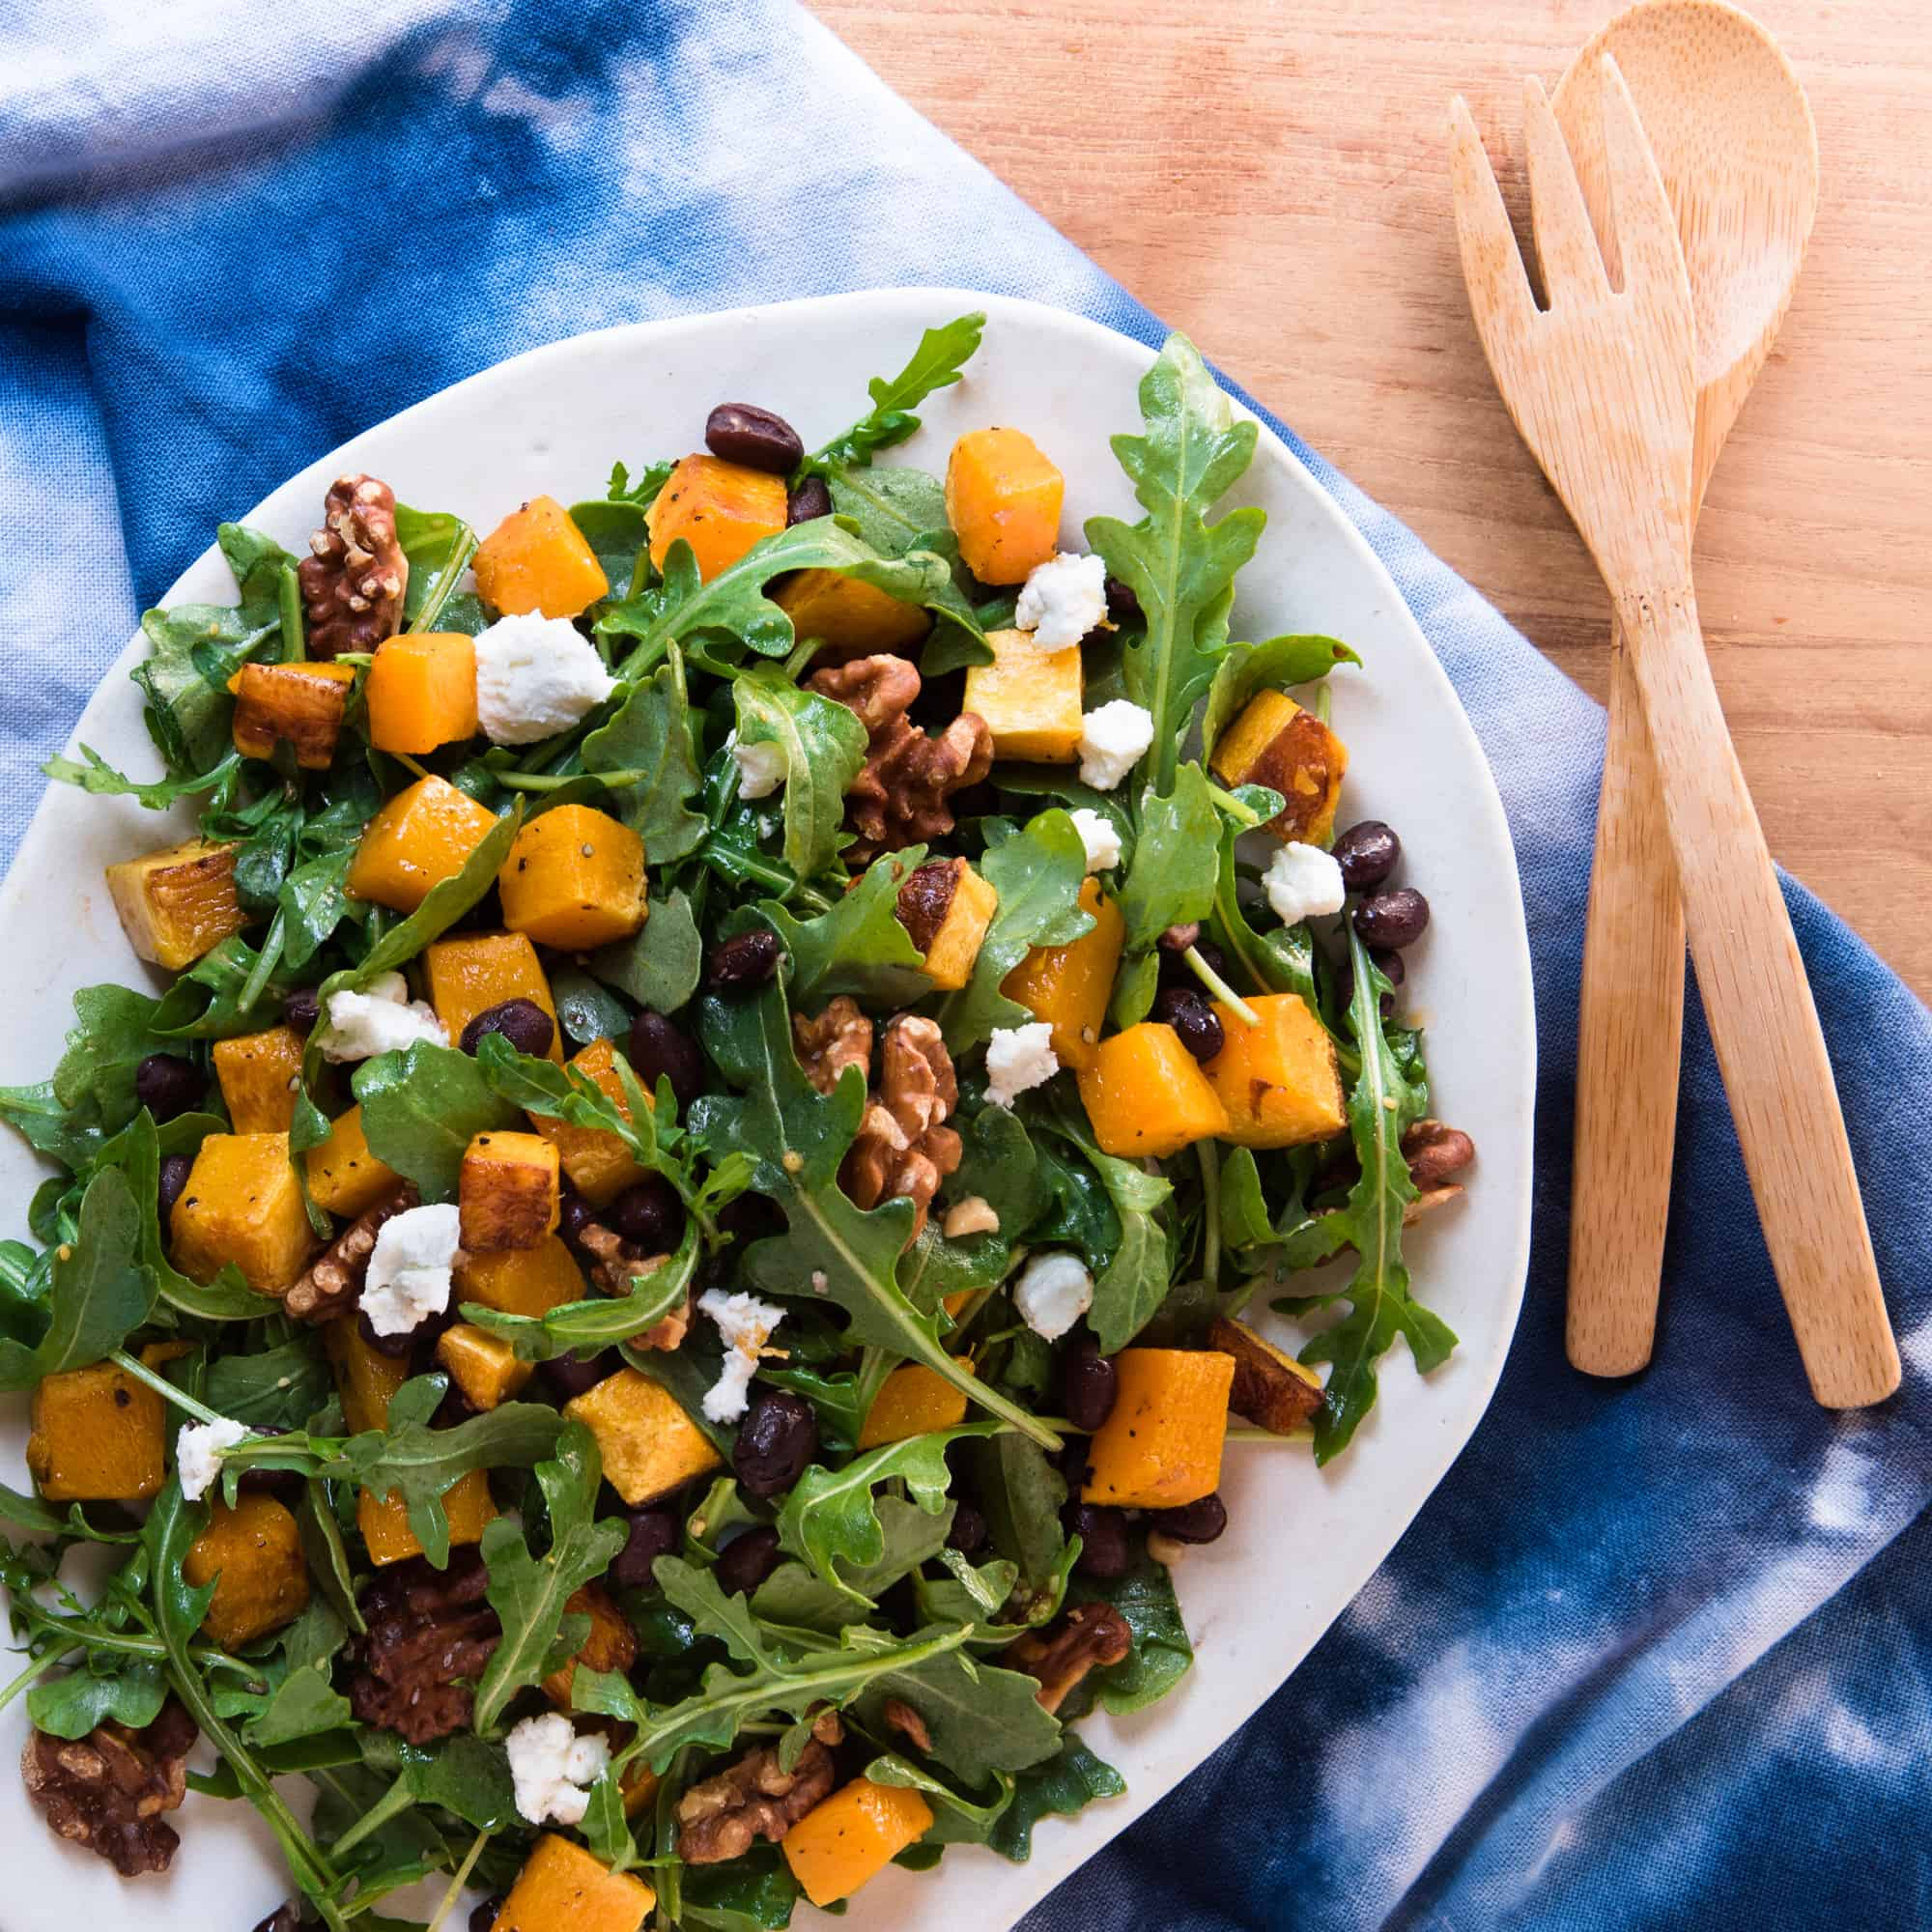 butternut squash salad with goat cheese, arugula, and walnuts on a blue linen with wooden serving spoons